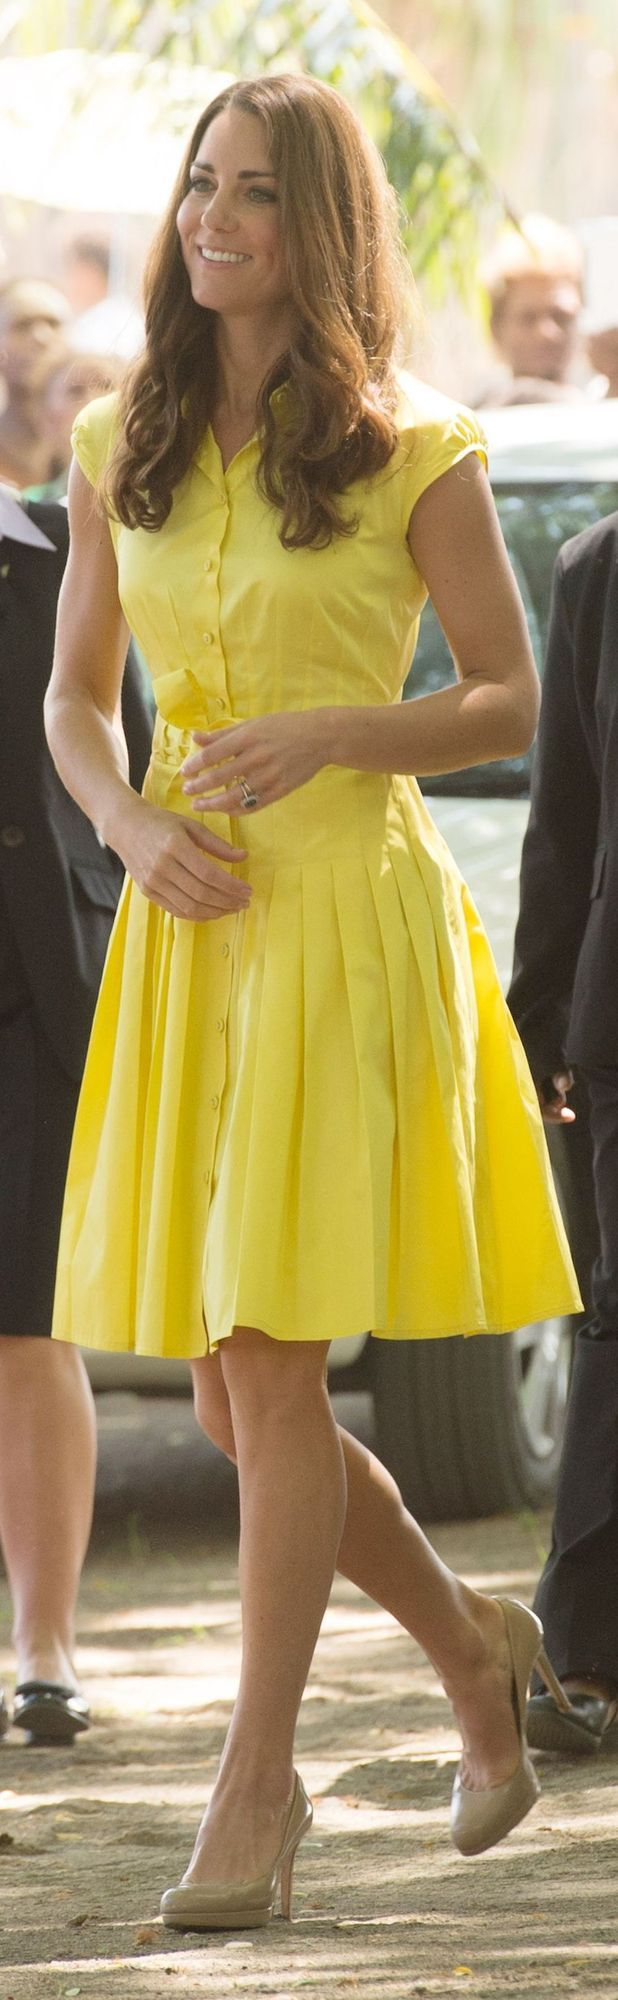 Yellow summer dress (Jaeger dress worn by Duchess Kate)